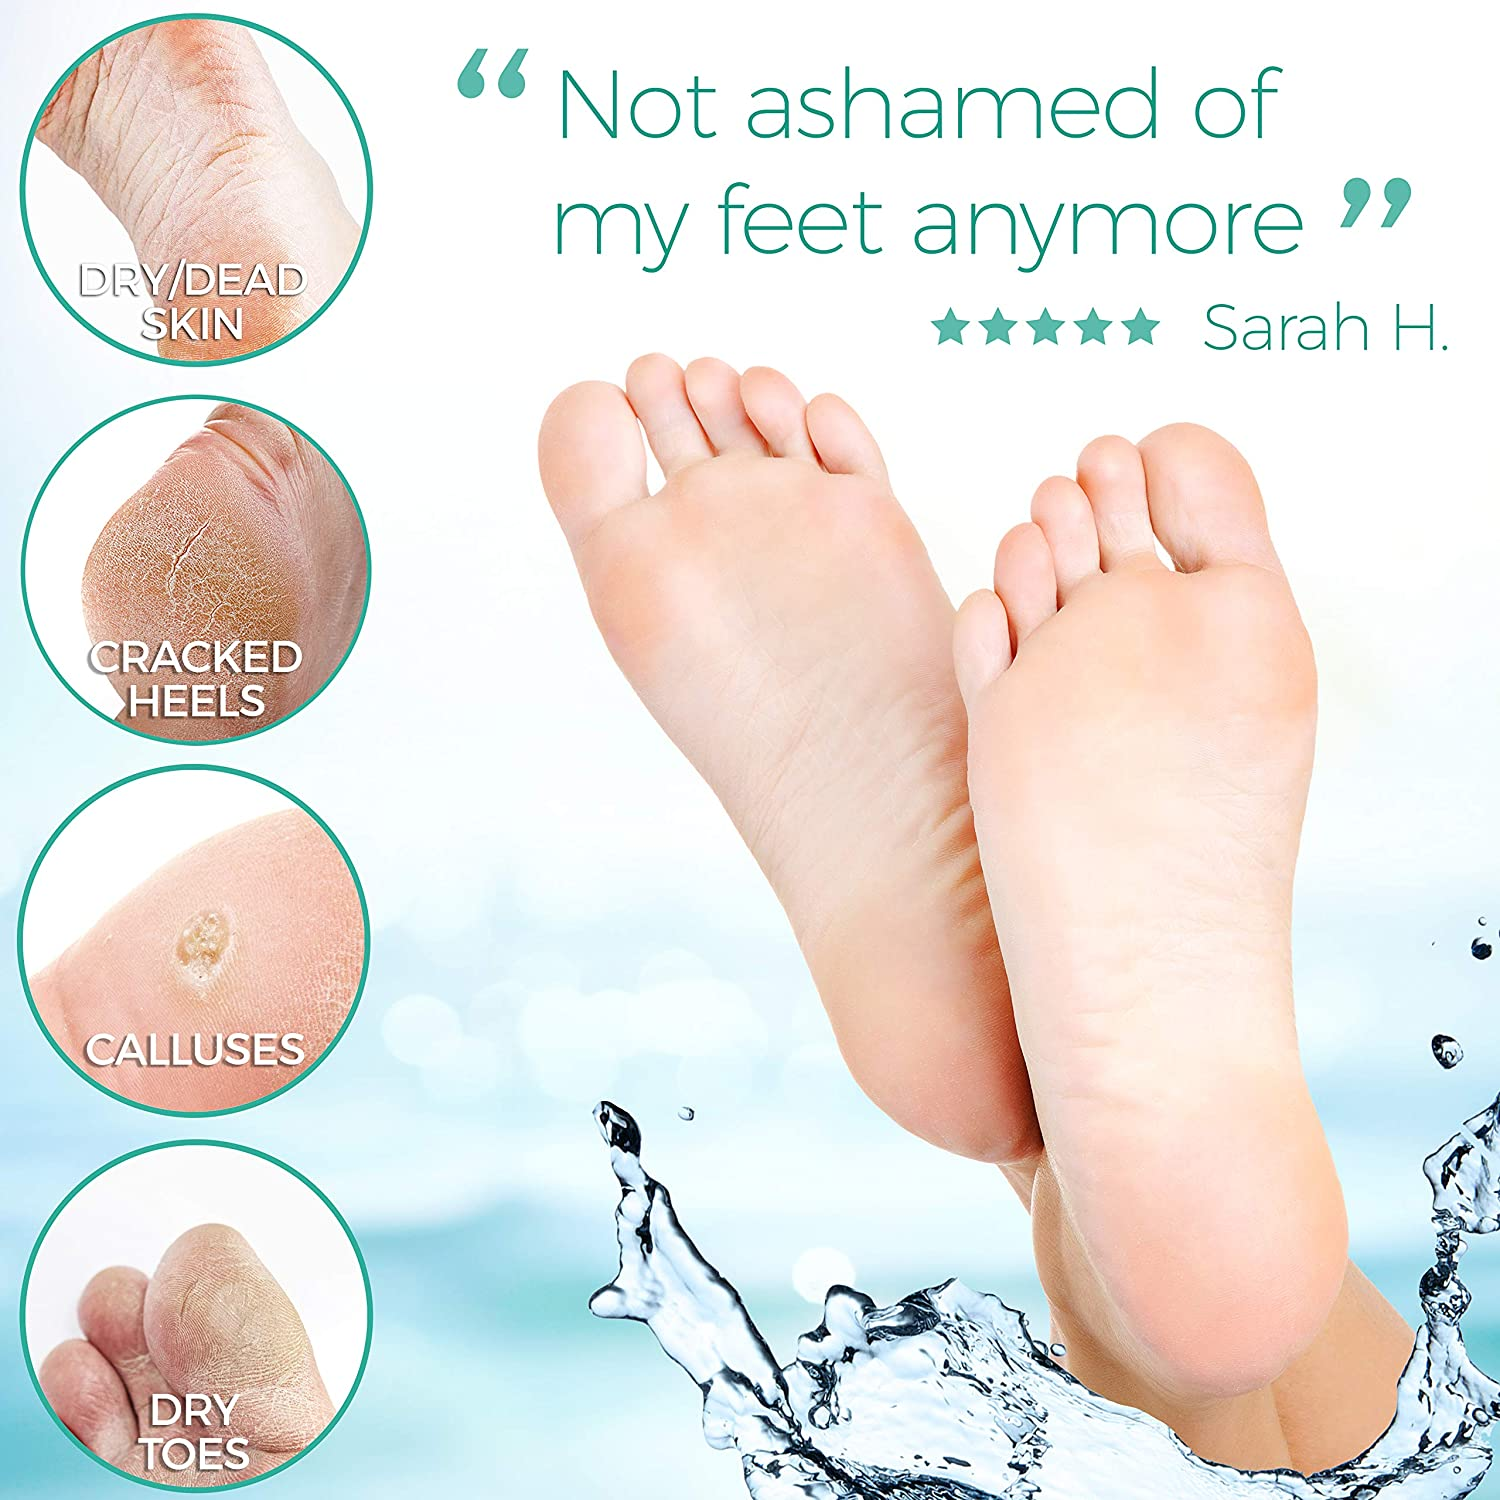 Amazon.com: Foot Peel Mask - 2 Pack - For Cracked Heels, Dead Skin &  Calluses - Make Your Feet Baby Soft & Get a Smooth Skin, Removes & Repairs  Rough Heels, Dry